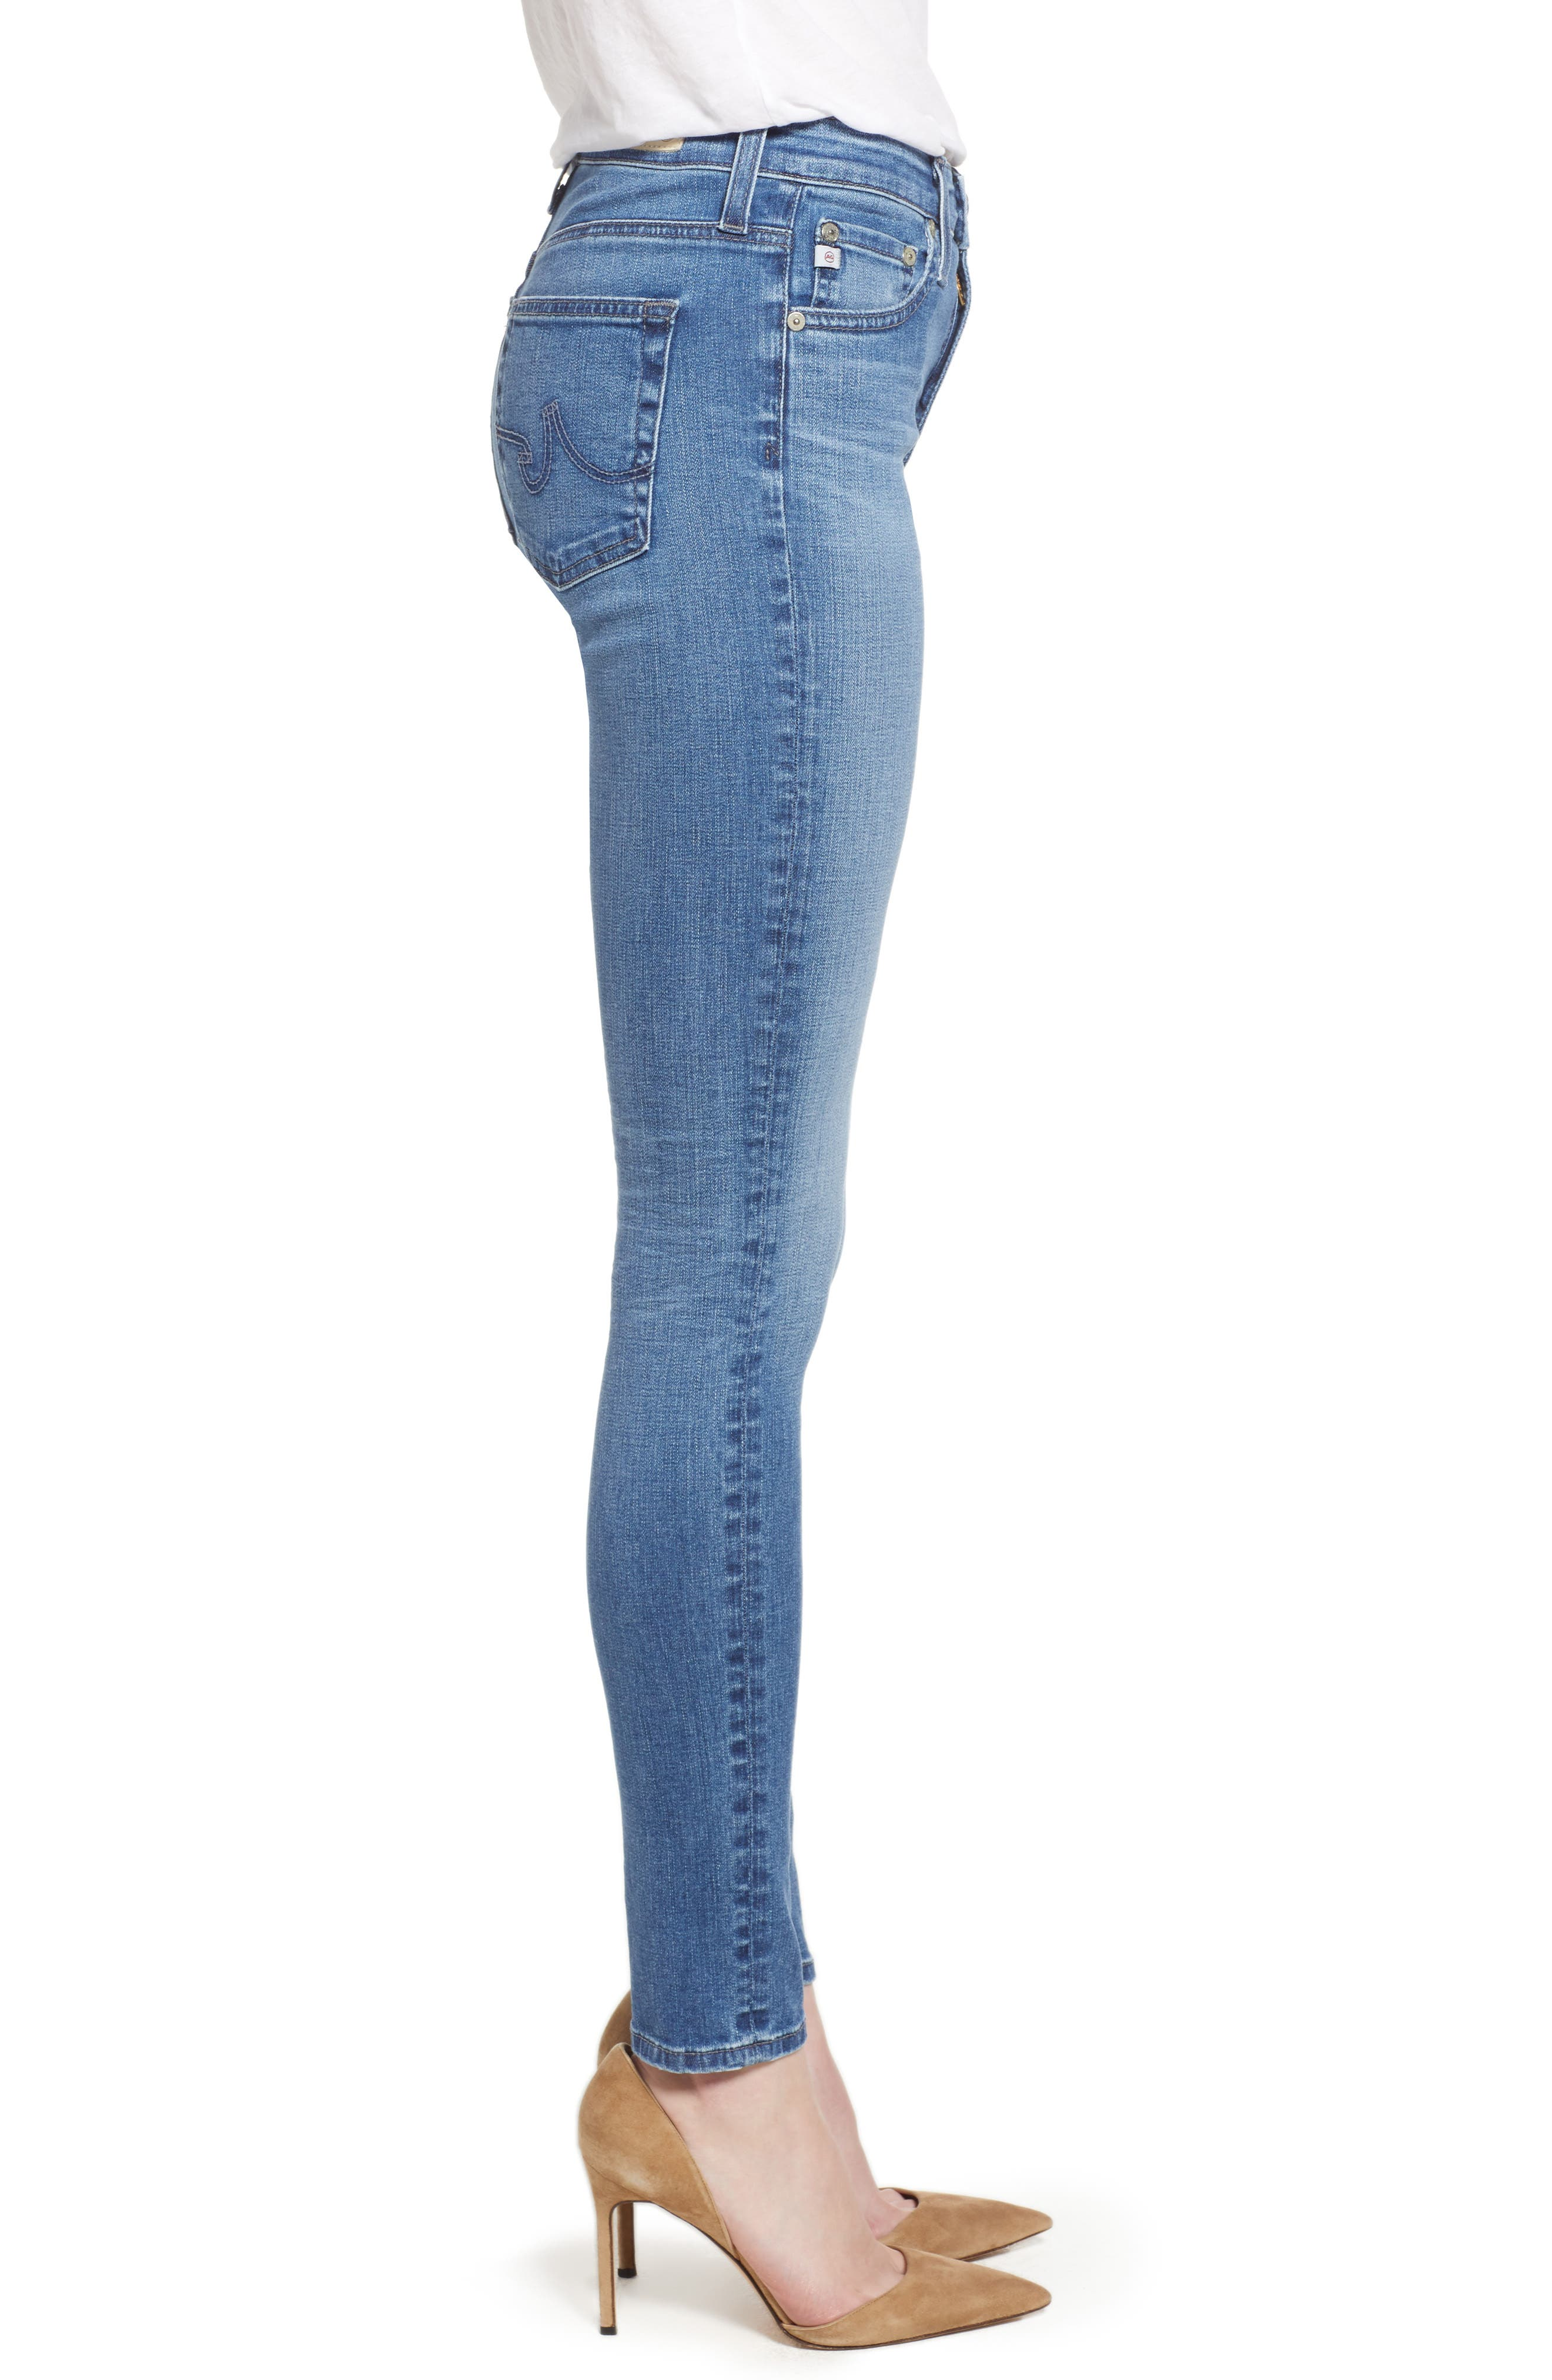 'The Farrah' High Rise Skinny Jeans,                             Alternate thumbnail 4, color,                             15 Years Chronic